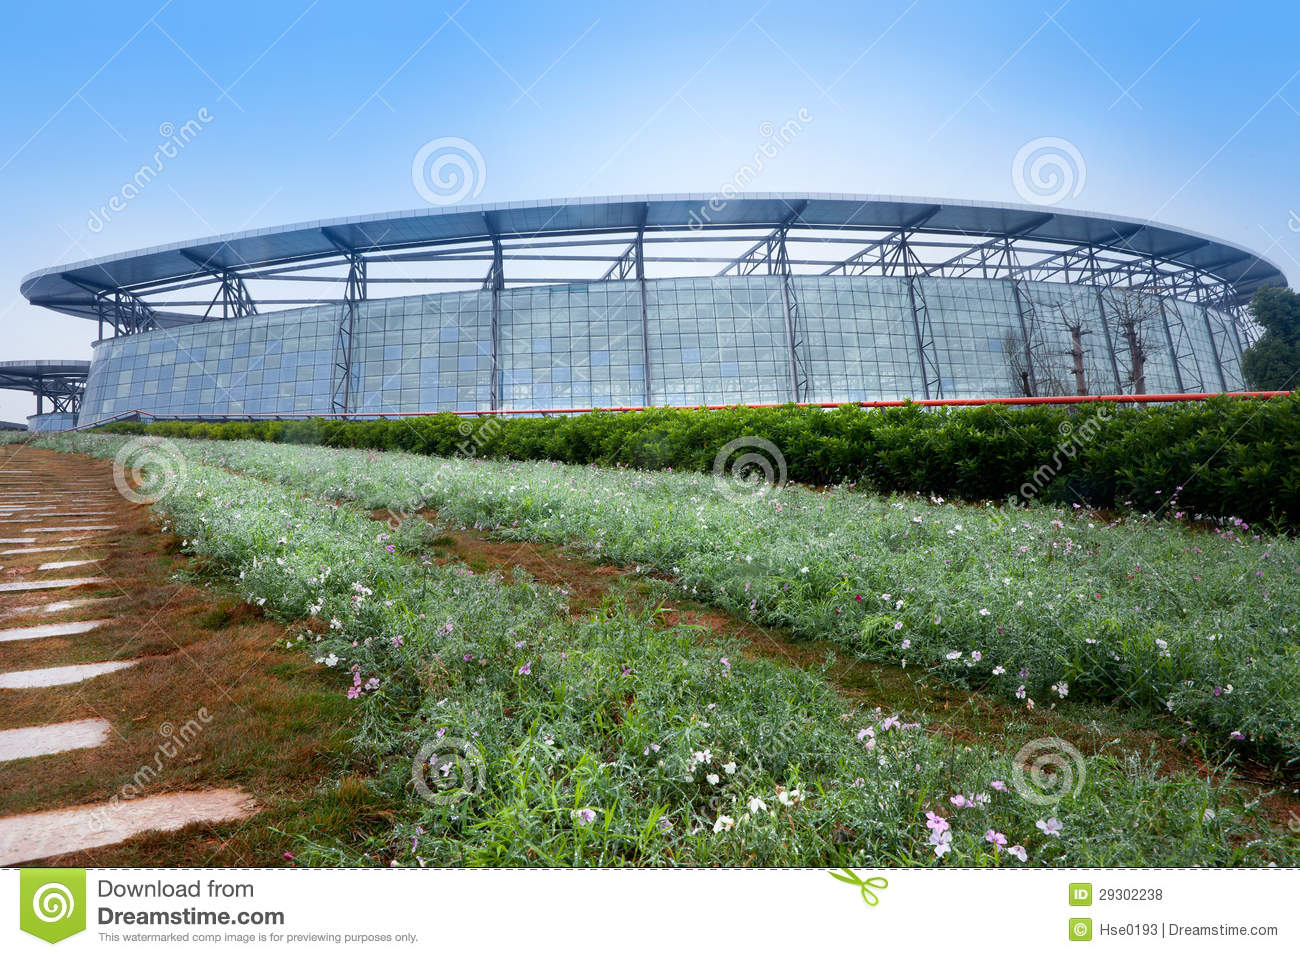 Modern greenhouse building stock photo. Image of gr - 29302238 on modern square home plans, green beach house plans, eco-friendly house plans, green small house plans, green modern kitchens, green modern bedroom, green prefab house plans, green bungalow house plans, green modern building, greene and greene house plans, green house designs, green modern design, contemporary house plans, green ranch house plans, green architecture plans, green energy efficient house plans, green bathroom, green cottage plans, green garage plans, green craftsman house plans,